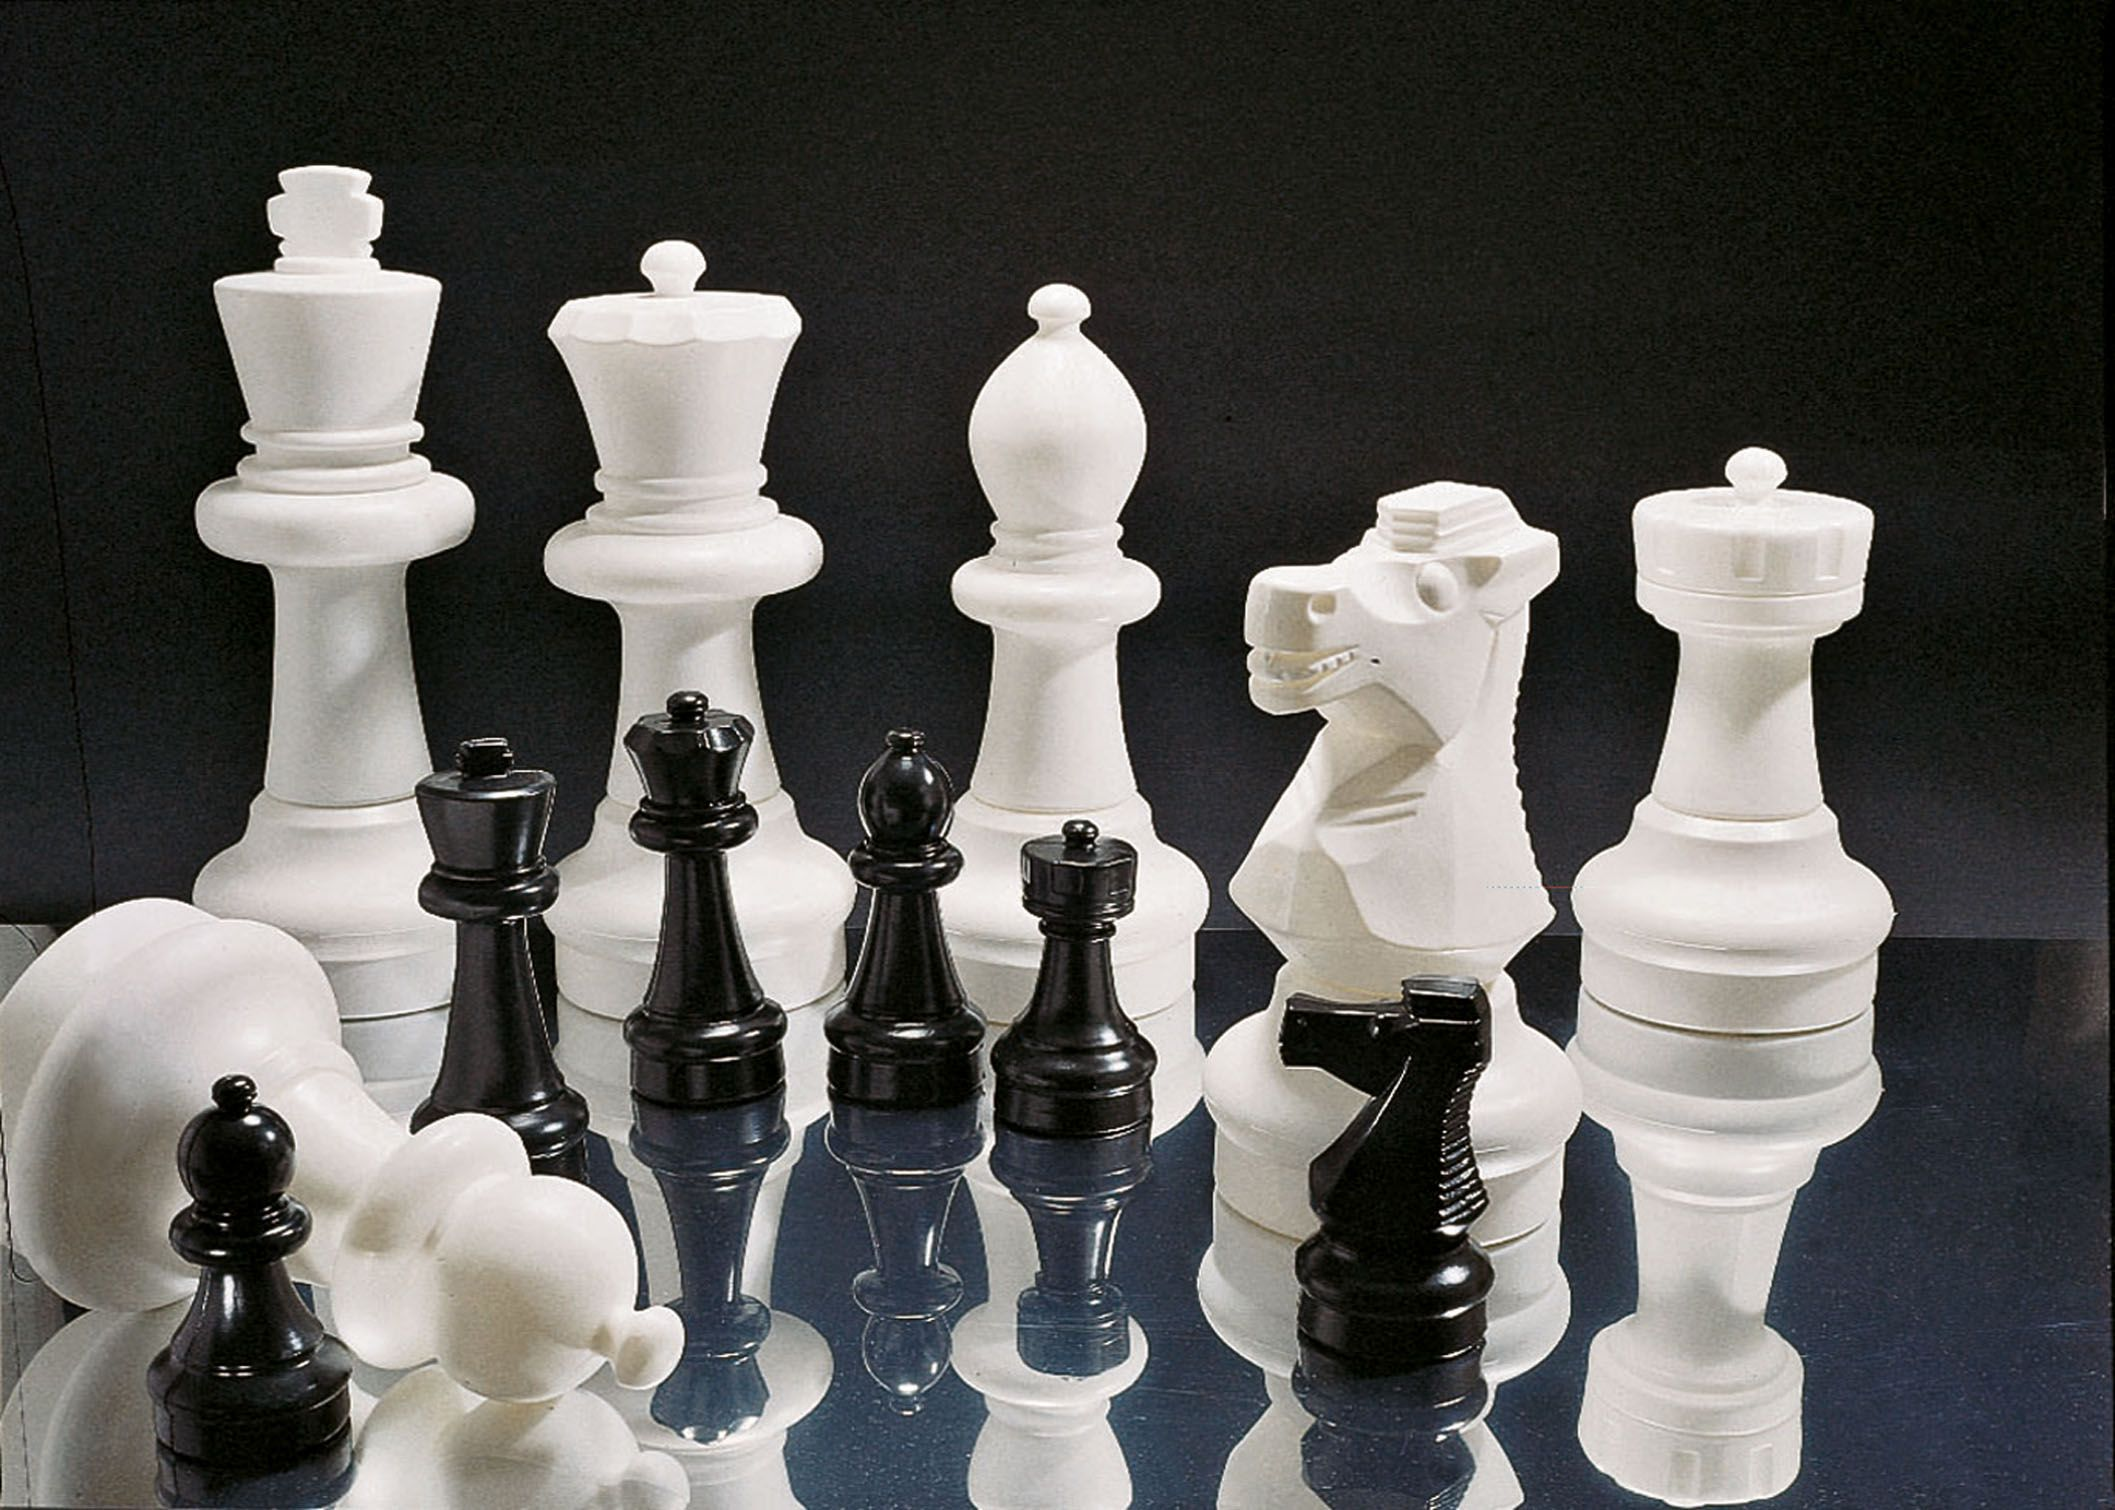 Small Chess Pieces